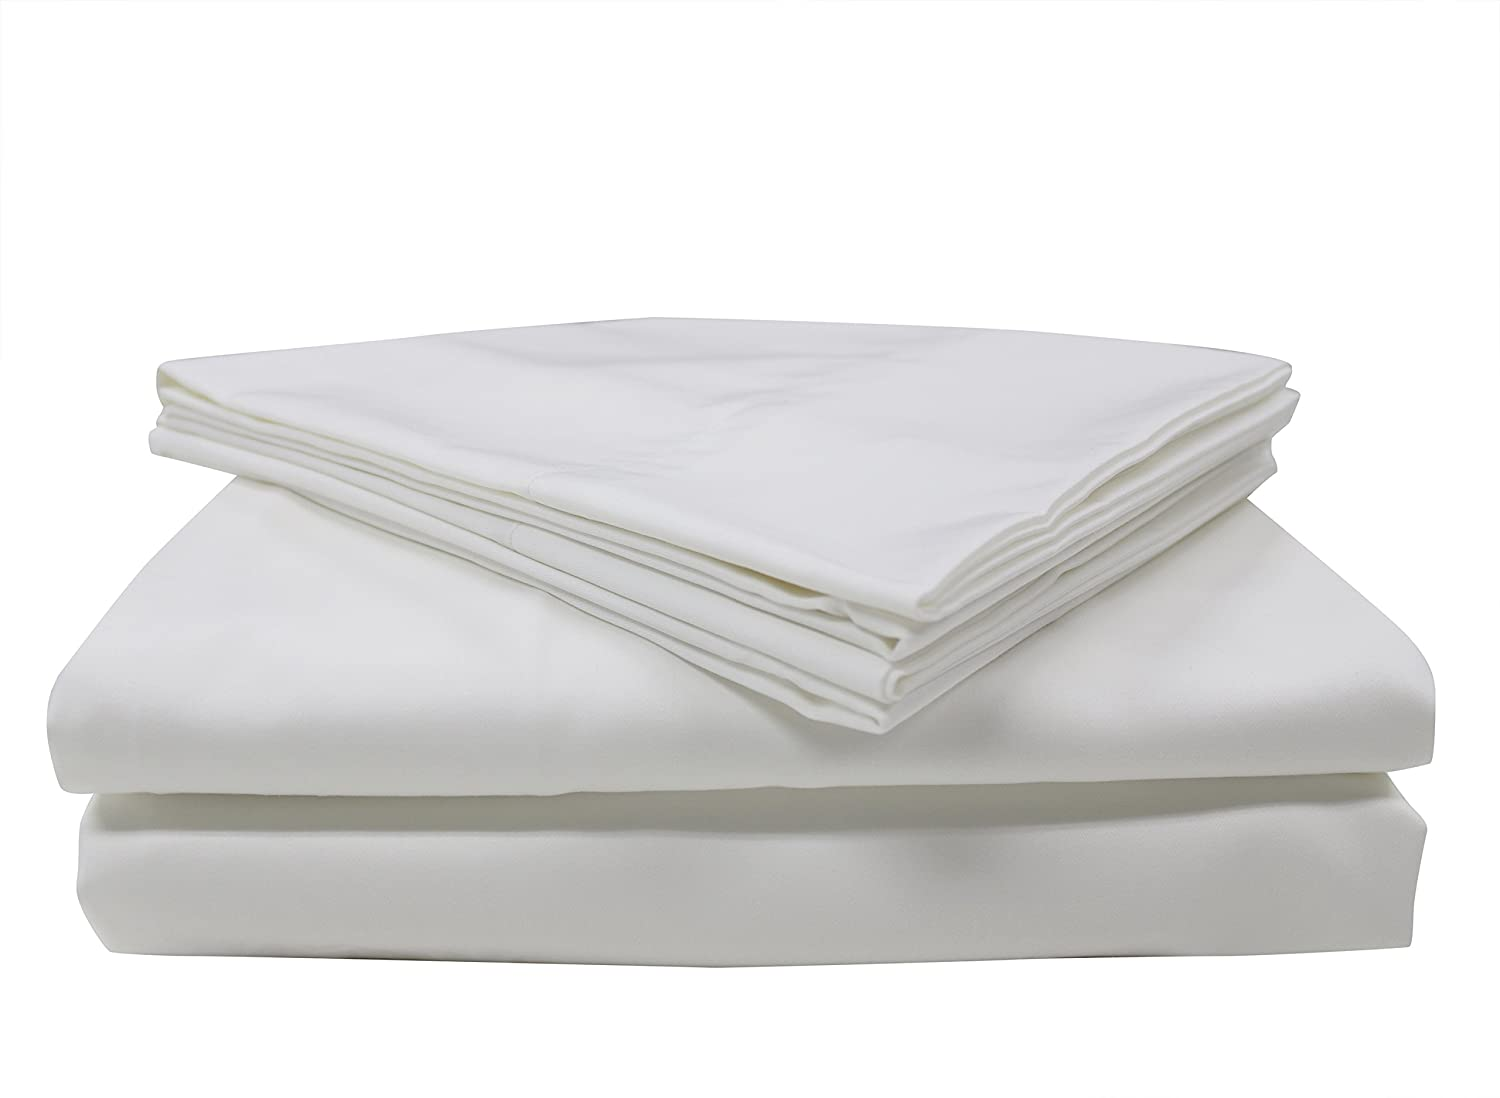 Mytex 400TC Wrinkle-Less Cotton Plus Coolest Comfort with Nanotechnology Sheet Set King Silver